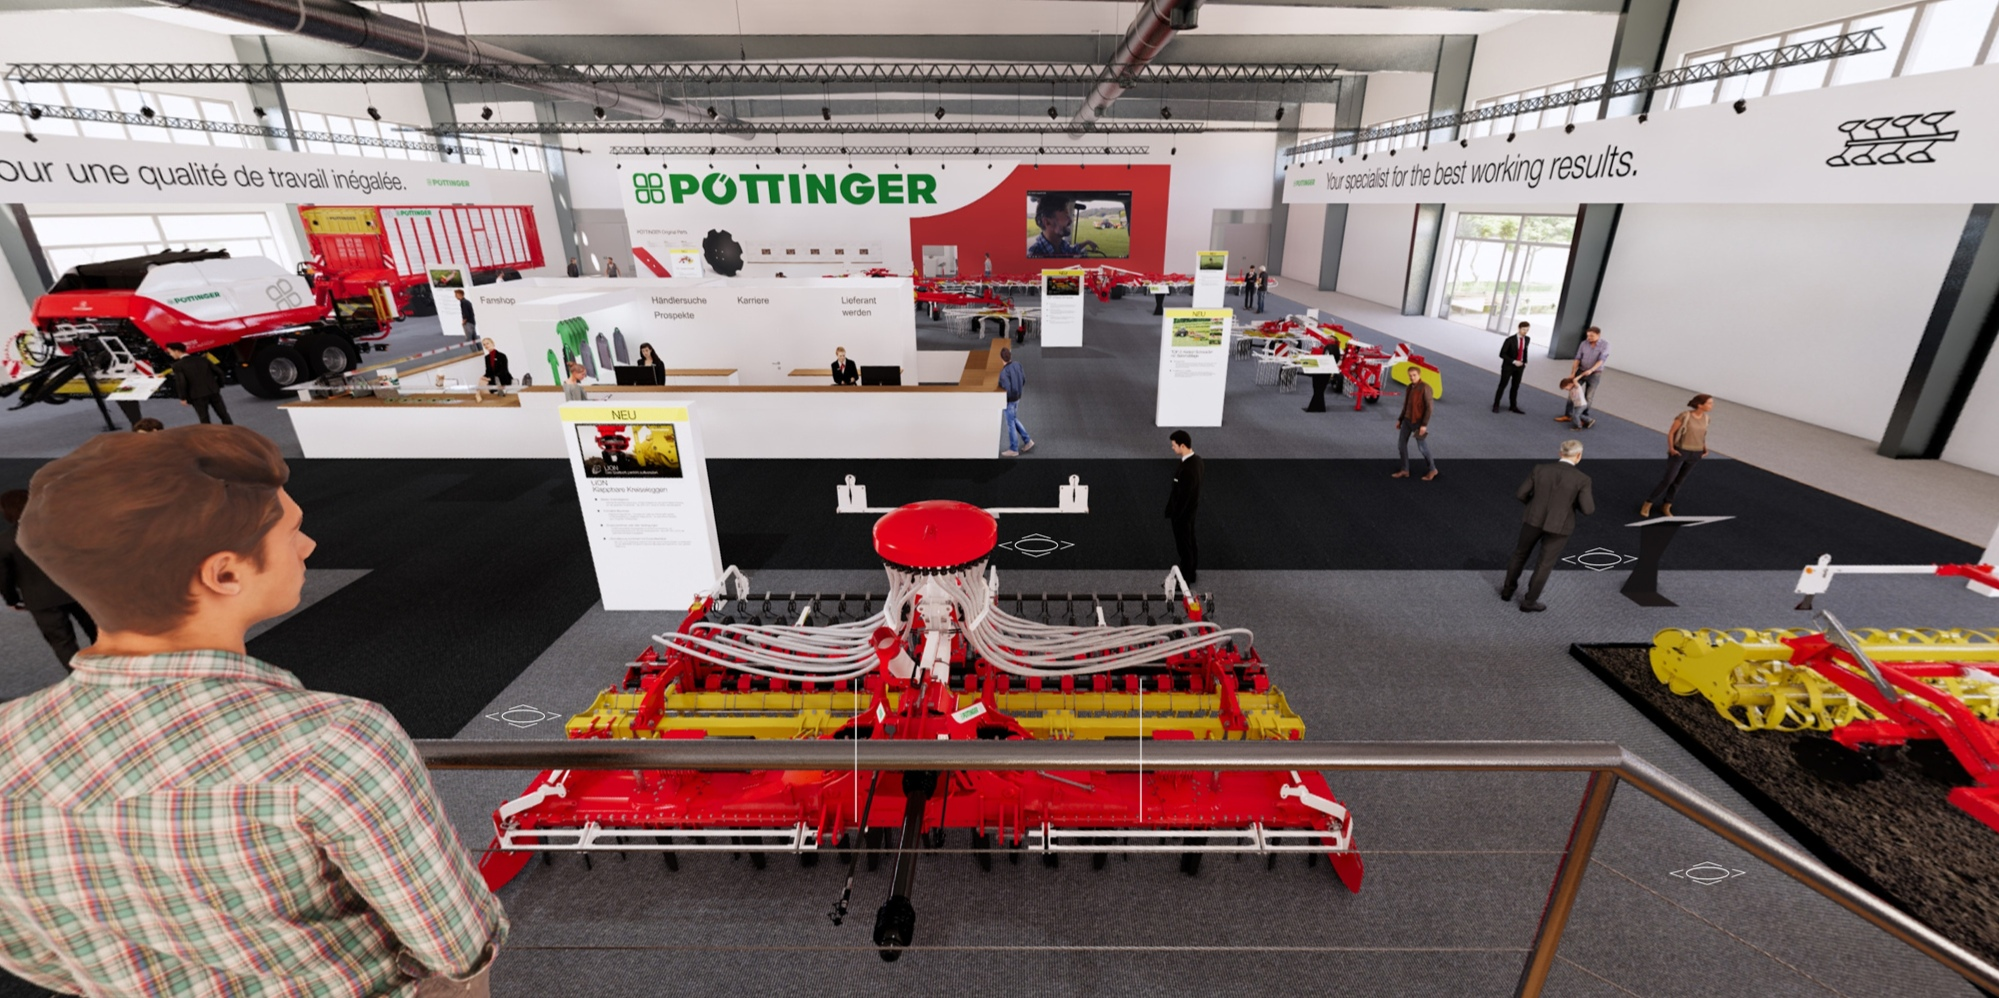 New! Visit the PÖTTINGER virtual fair